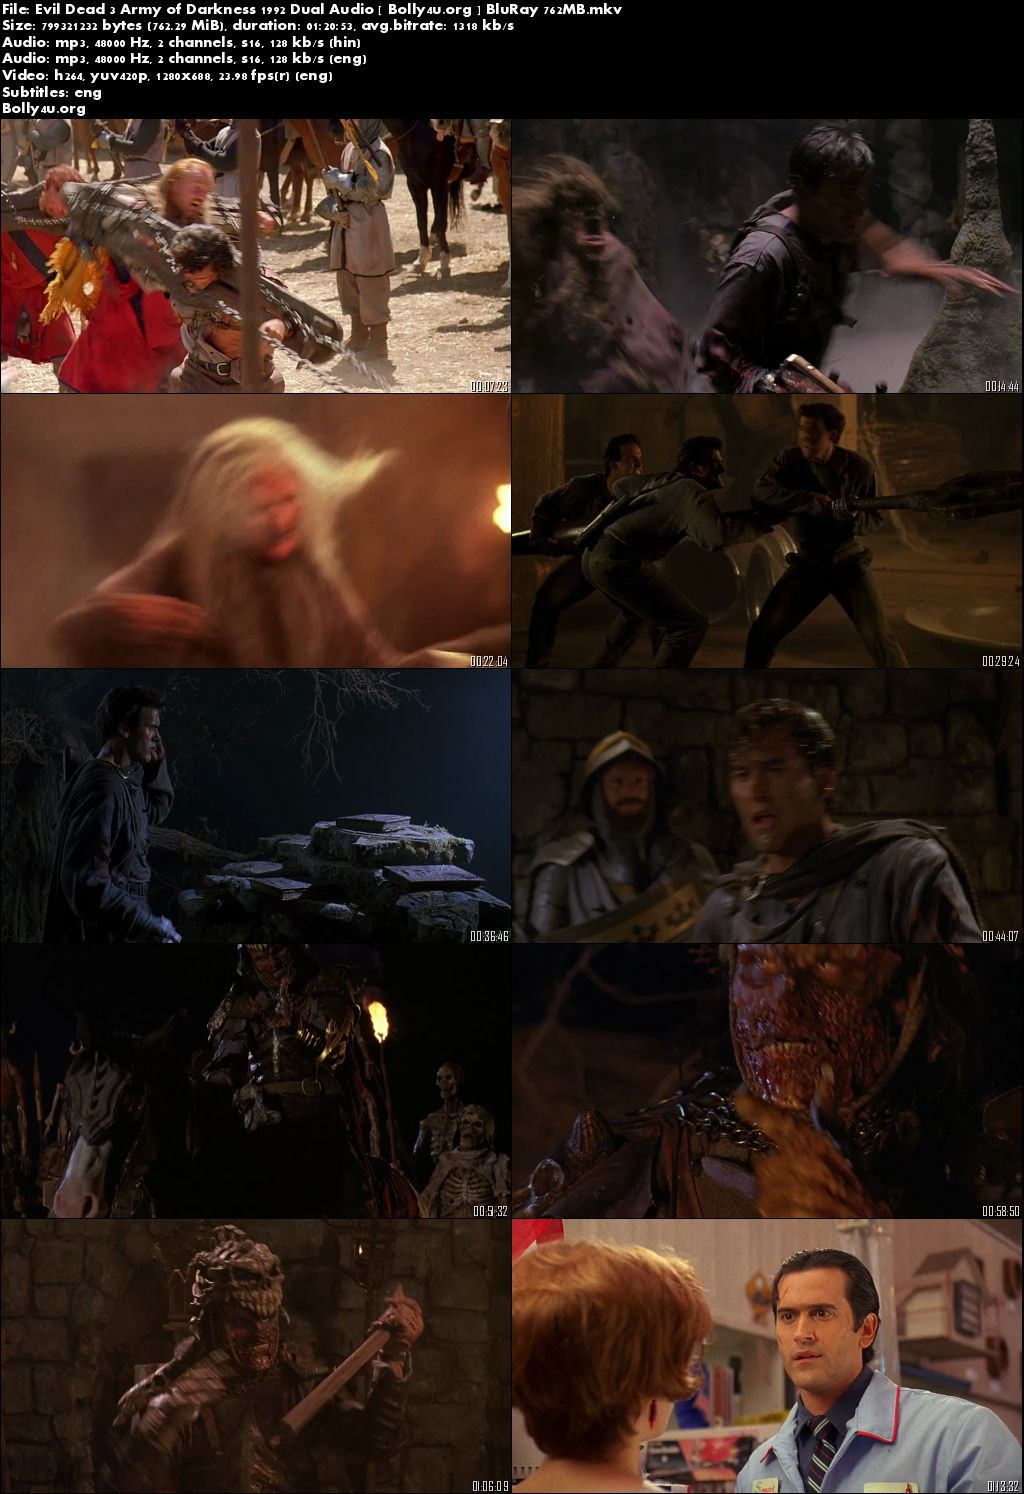 Evil Dead 3 Army of Darkness 1992 BluRay Hindi 720p Dual Audio 750Mb Download